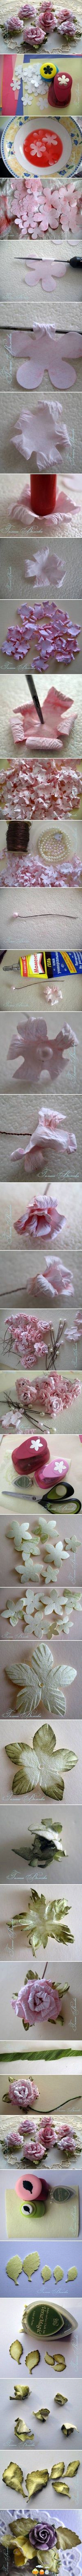 paper flower tutorial, paper roses and paper flowers.